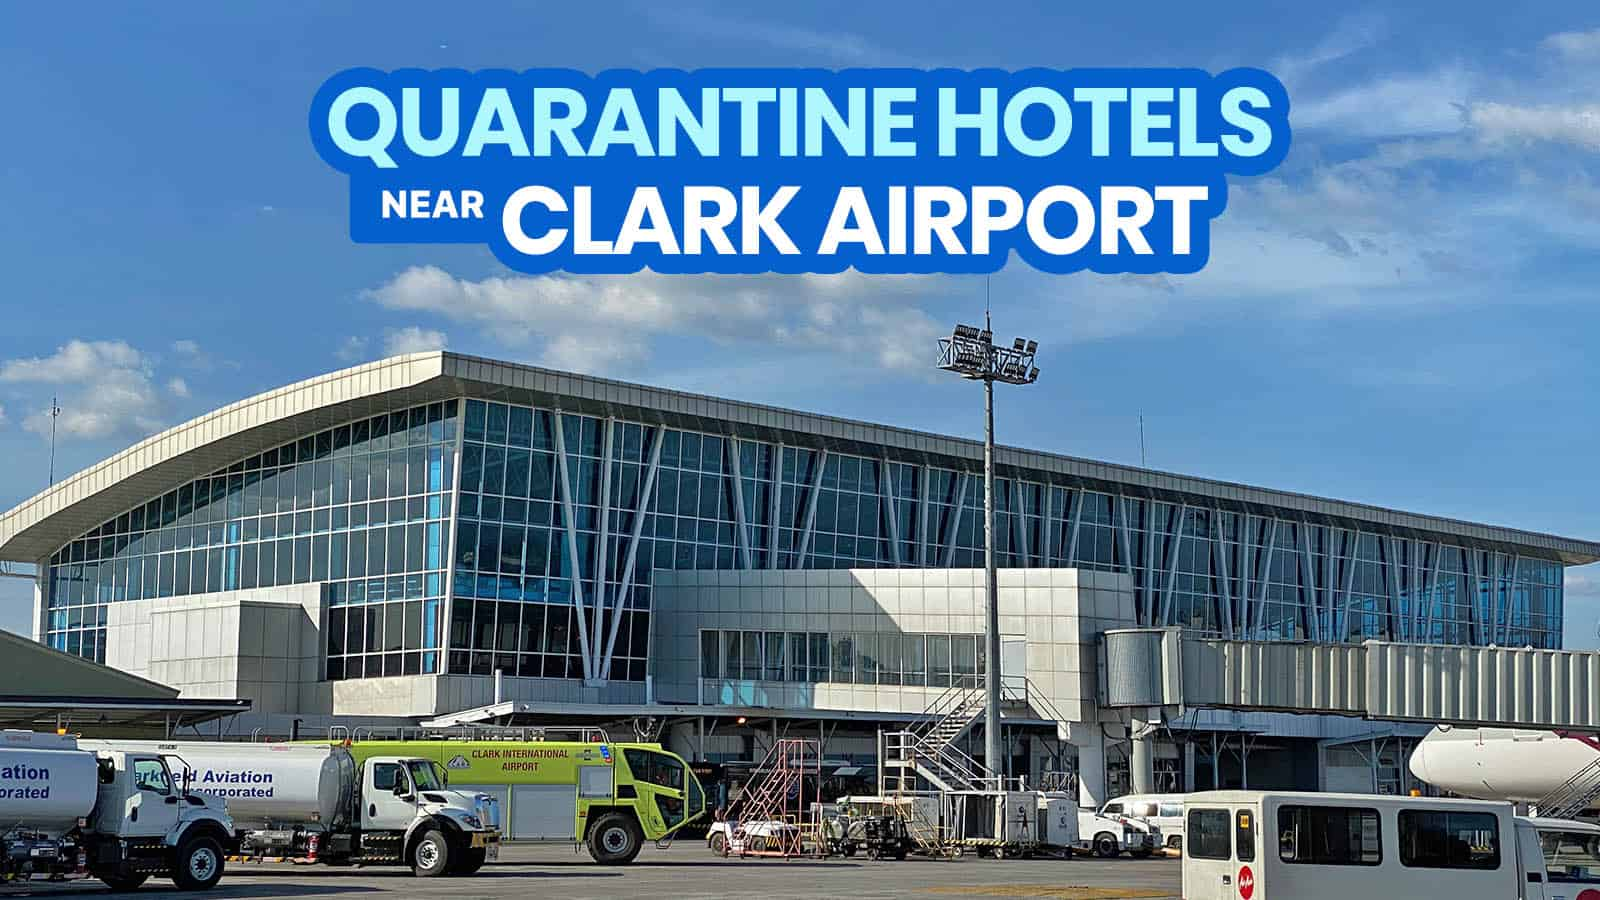 2021 List of DOH-BOQ-Accredited QUARANTINE HOTELS Near CLARK AIRPORT